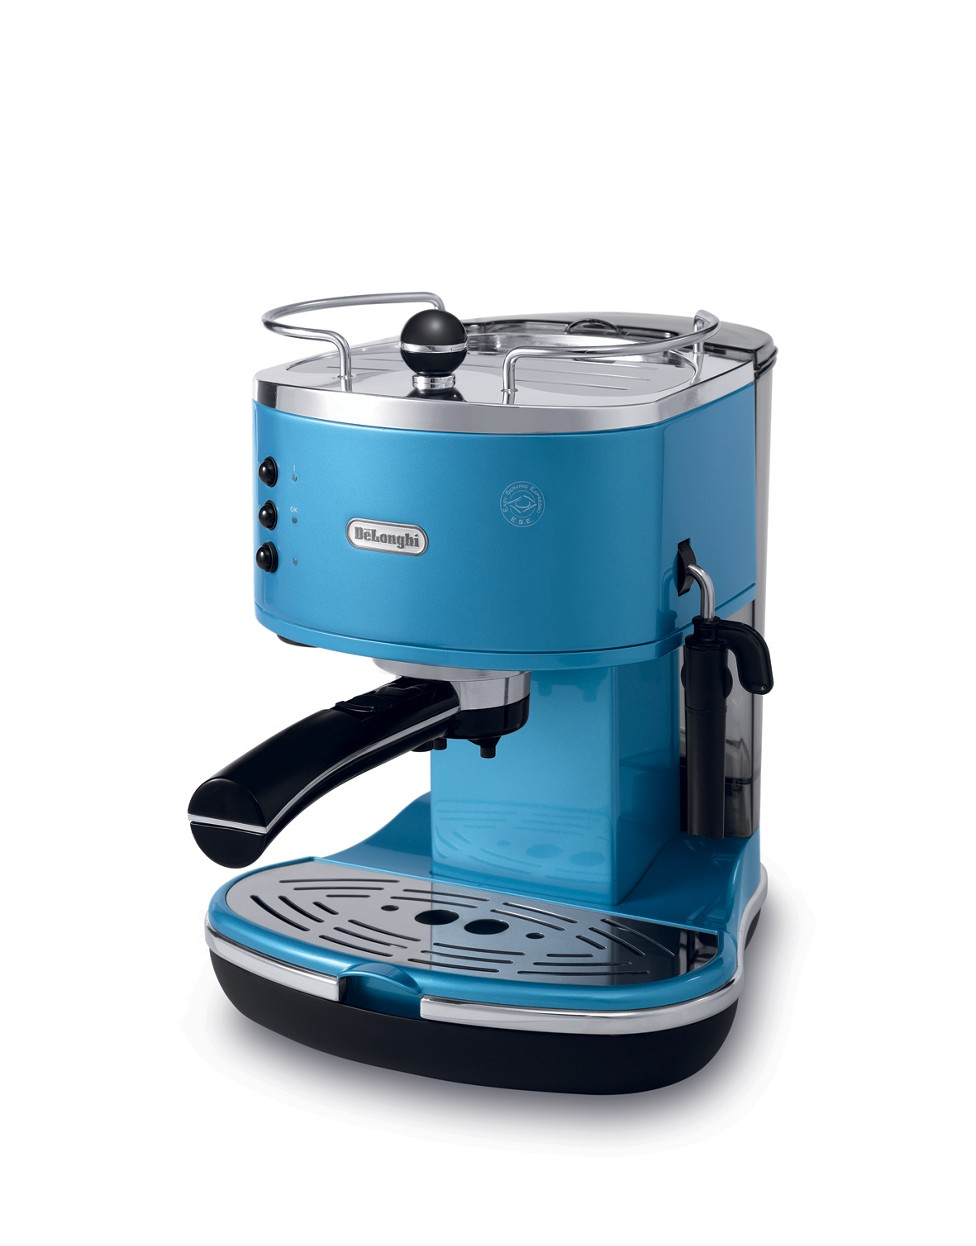 Delonghi ECO310.B Blue Coffee Maker - review, compare prices, buy online